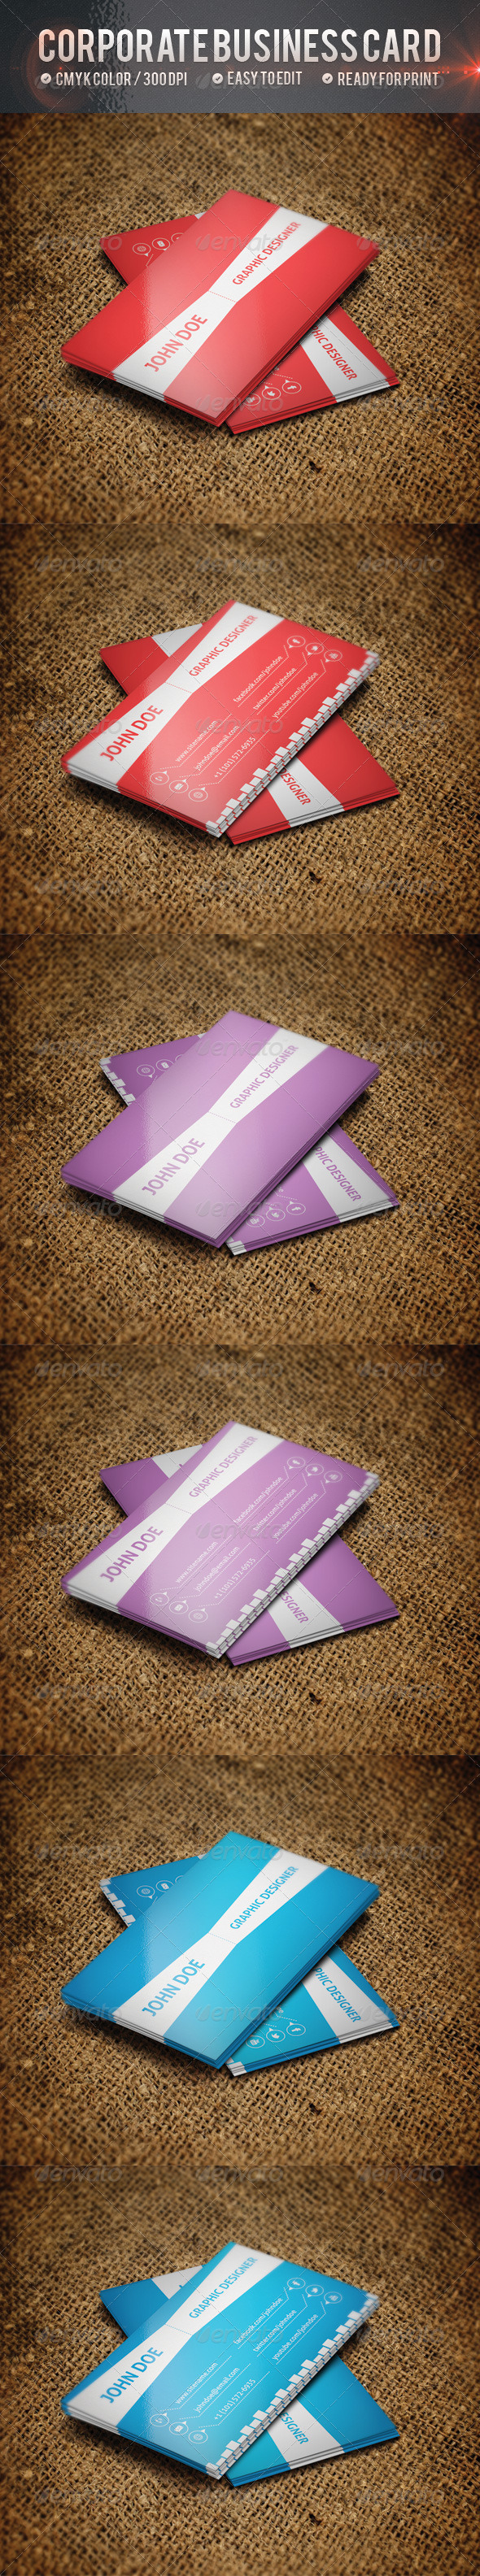 GraphicRiver Corporate Business Card V2 4740490